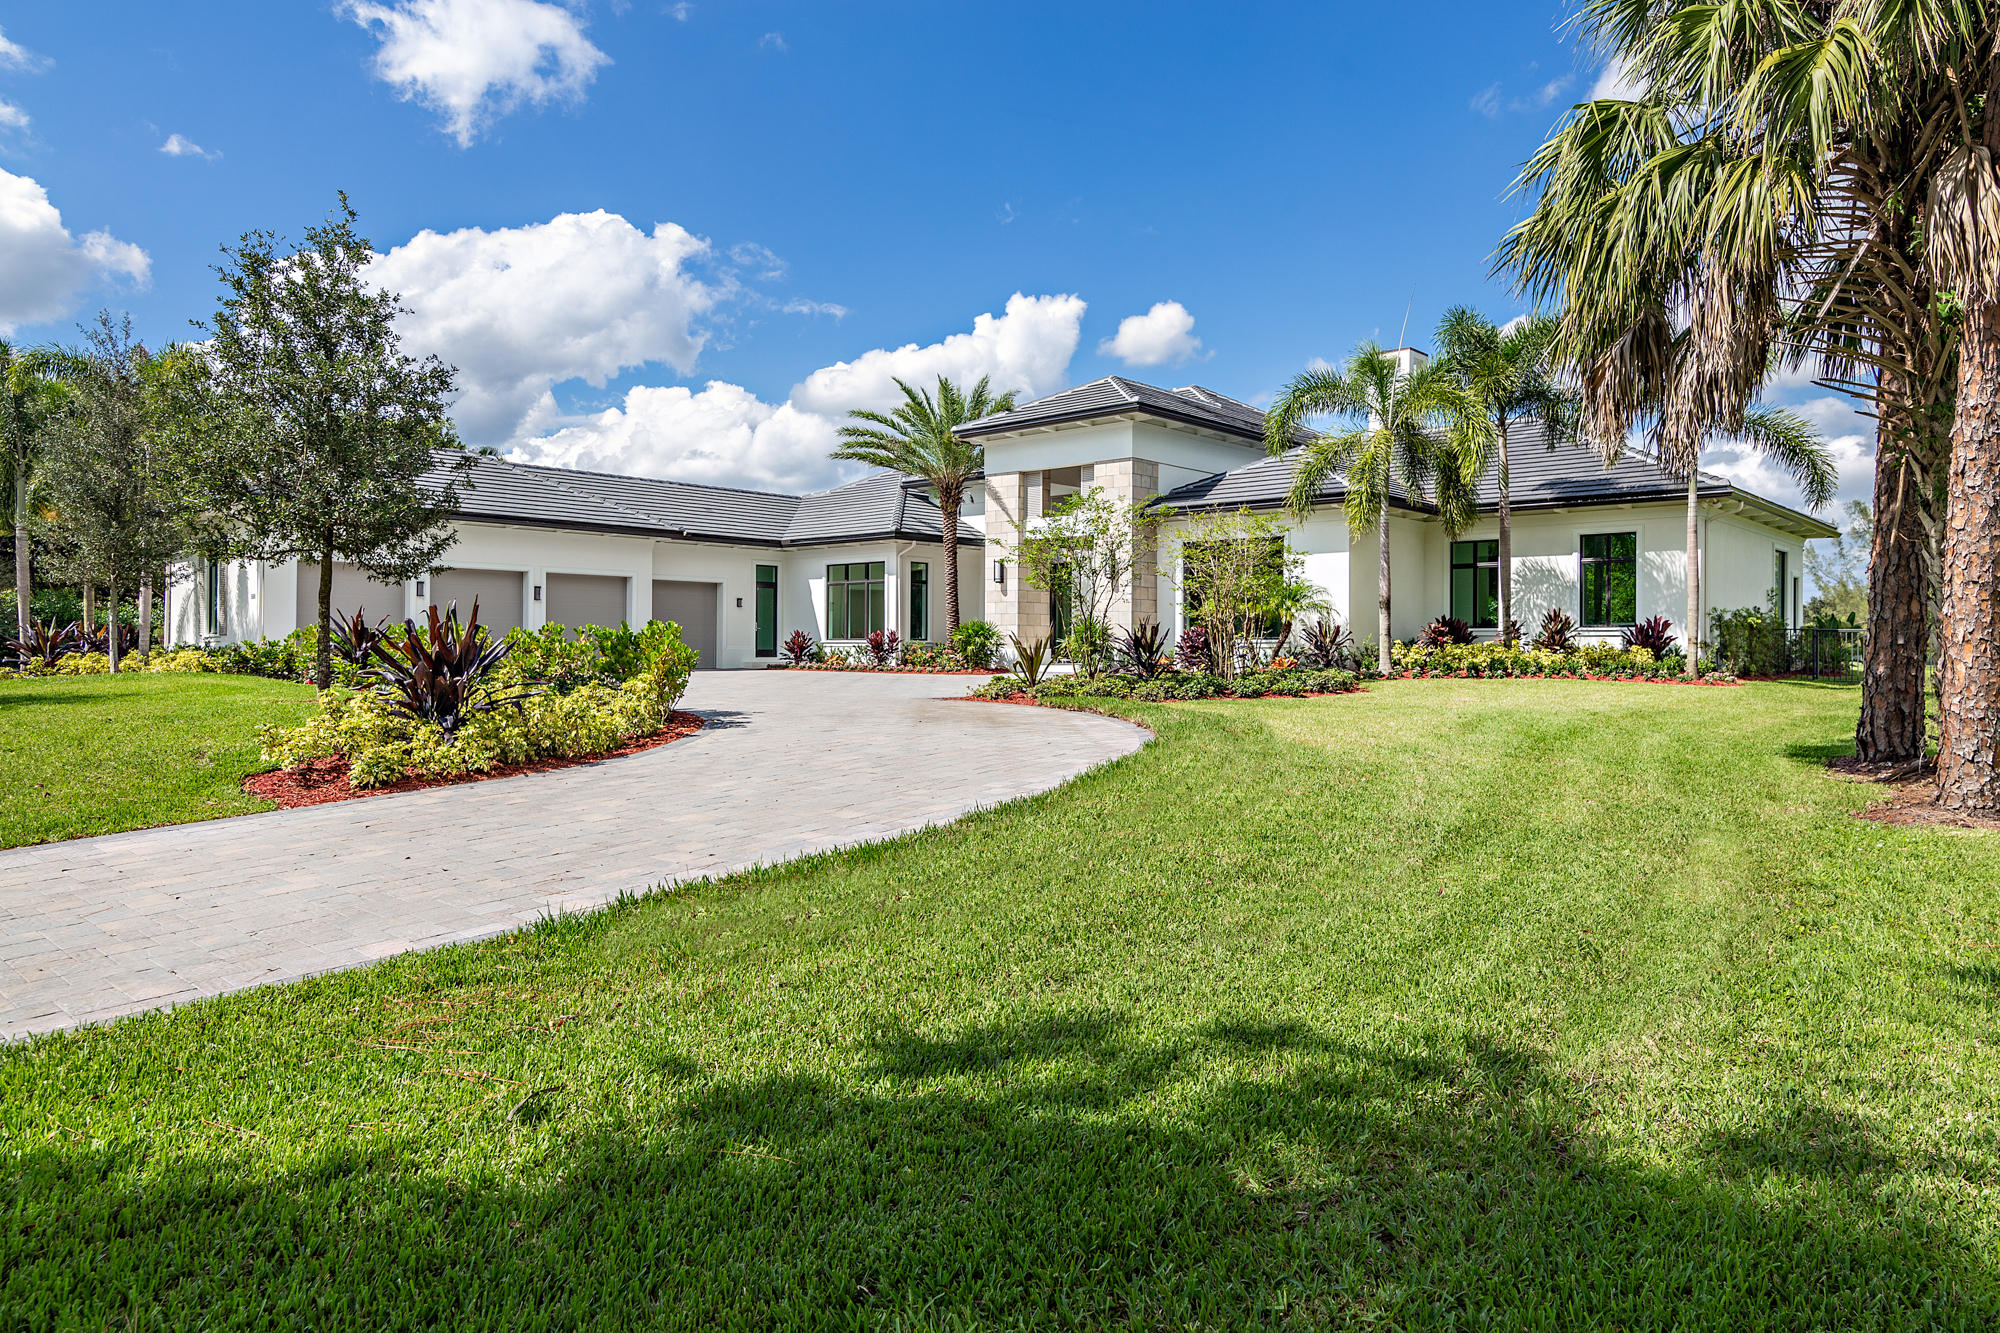 STEEPLECHASE HOMES FOR SALE